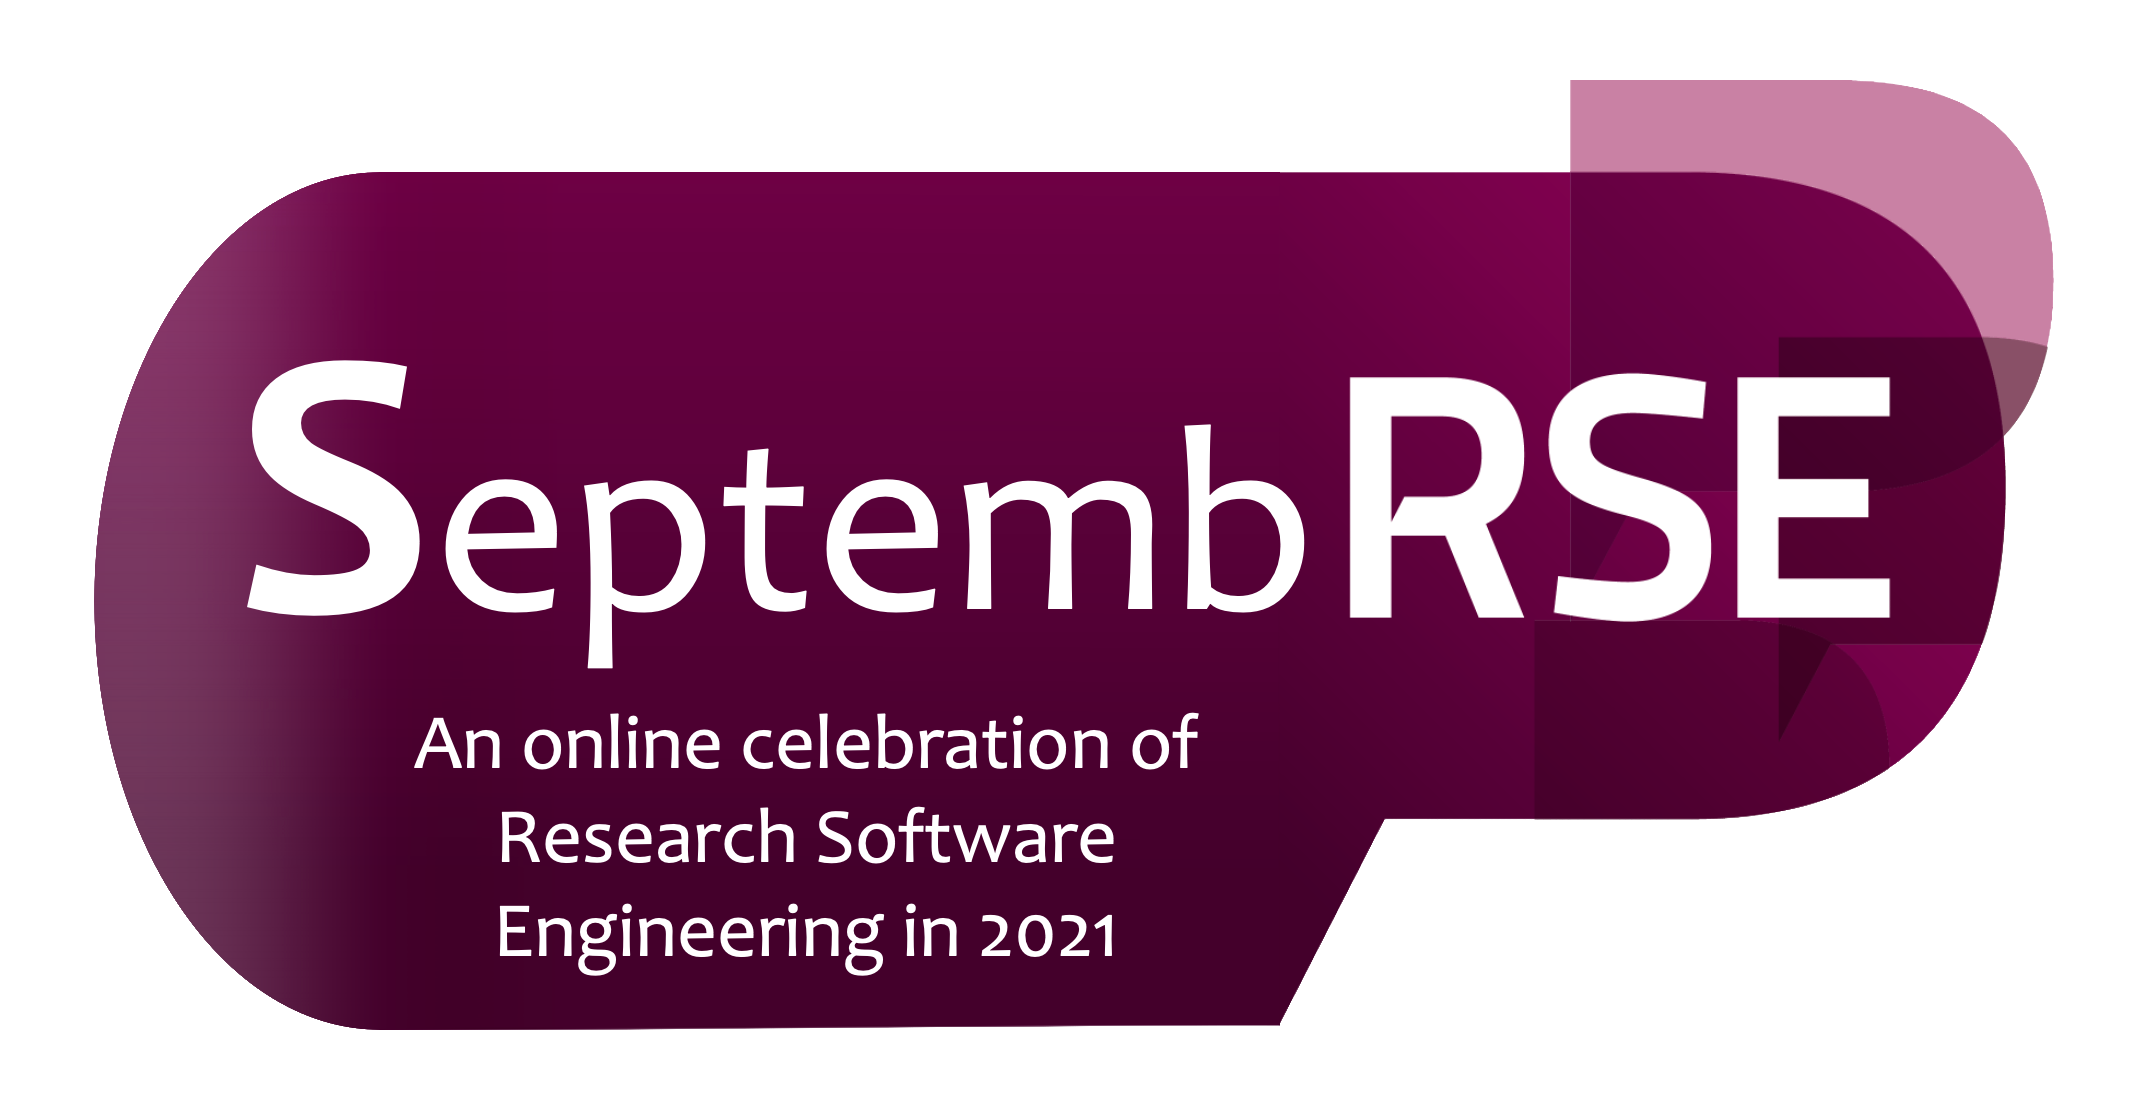 SeptembRSE: An online celebration of Research Software Engineering in 2021